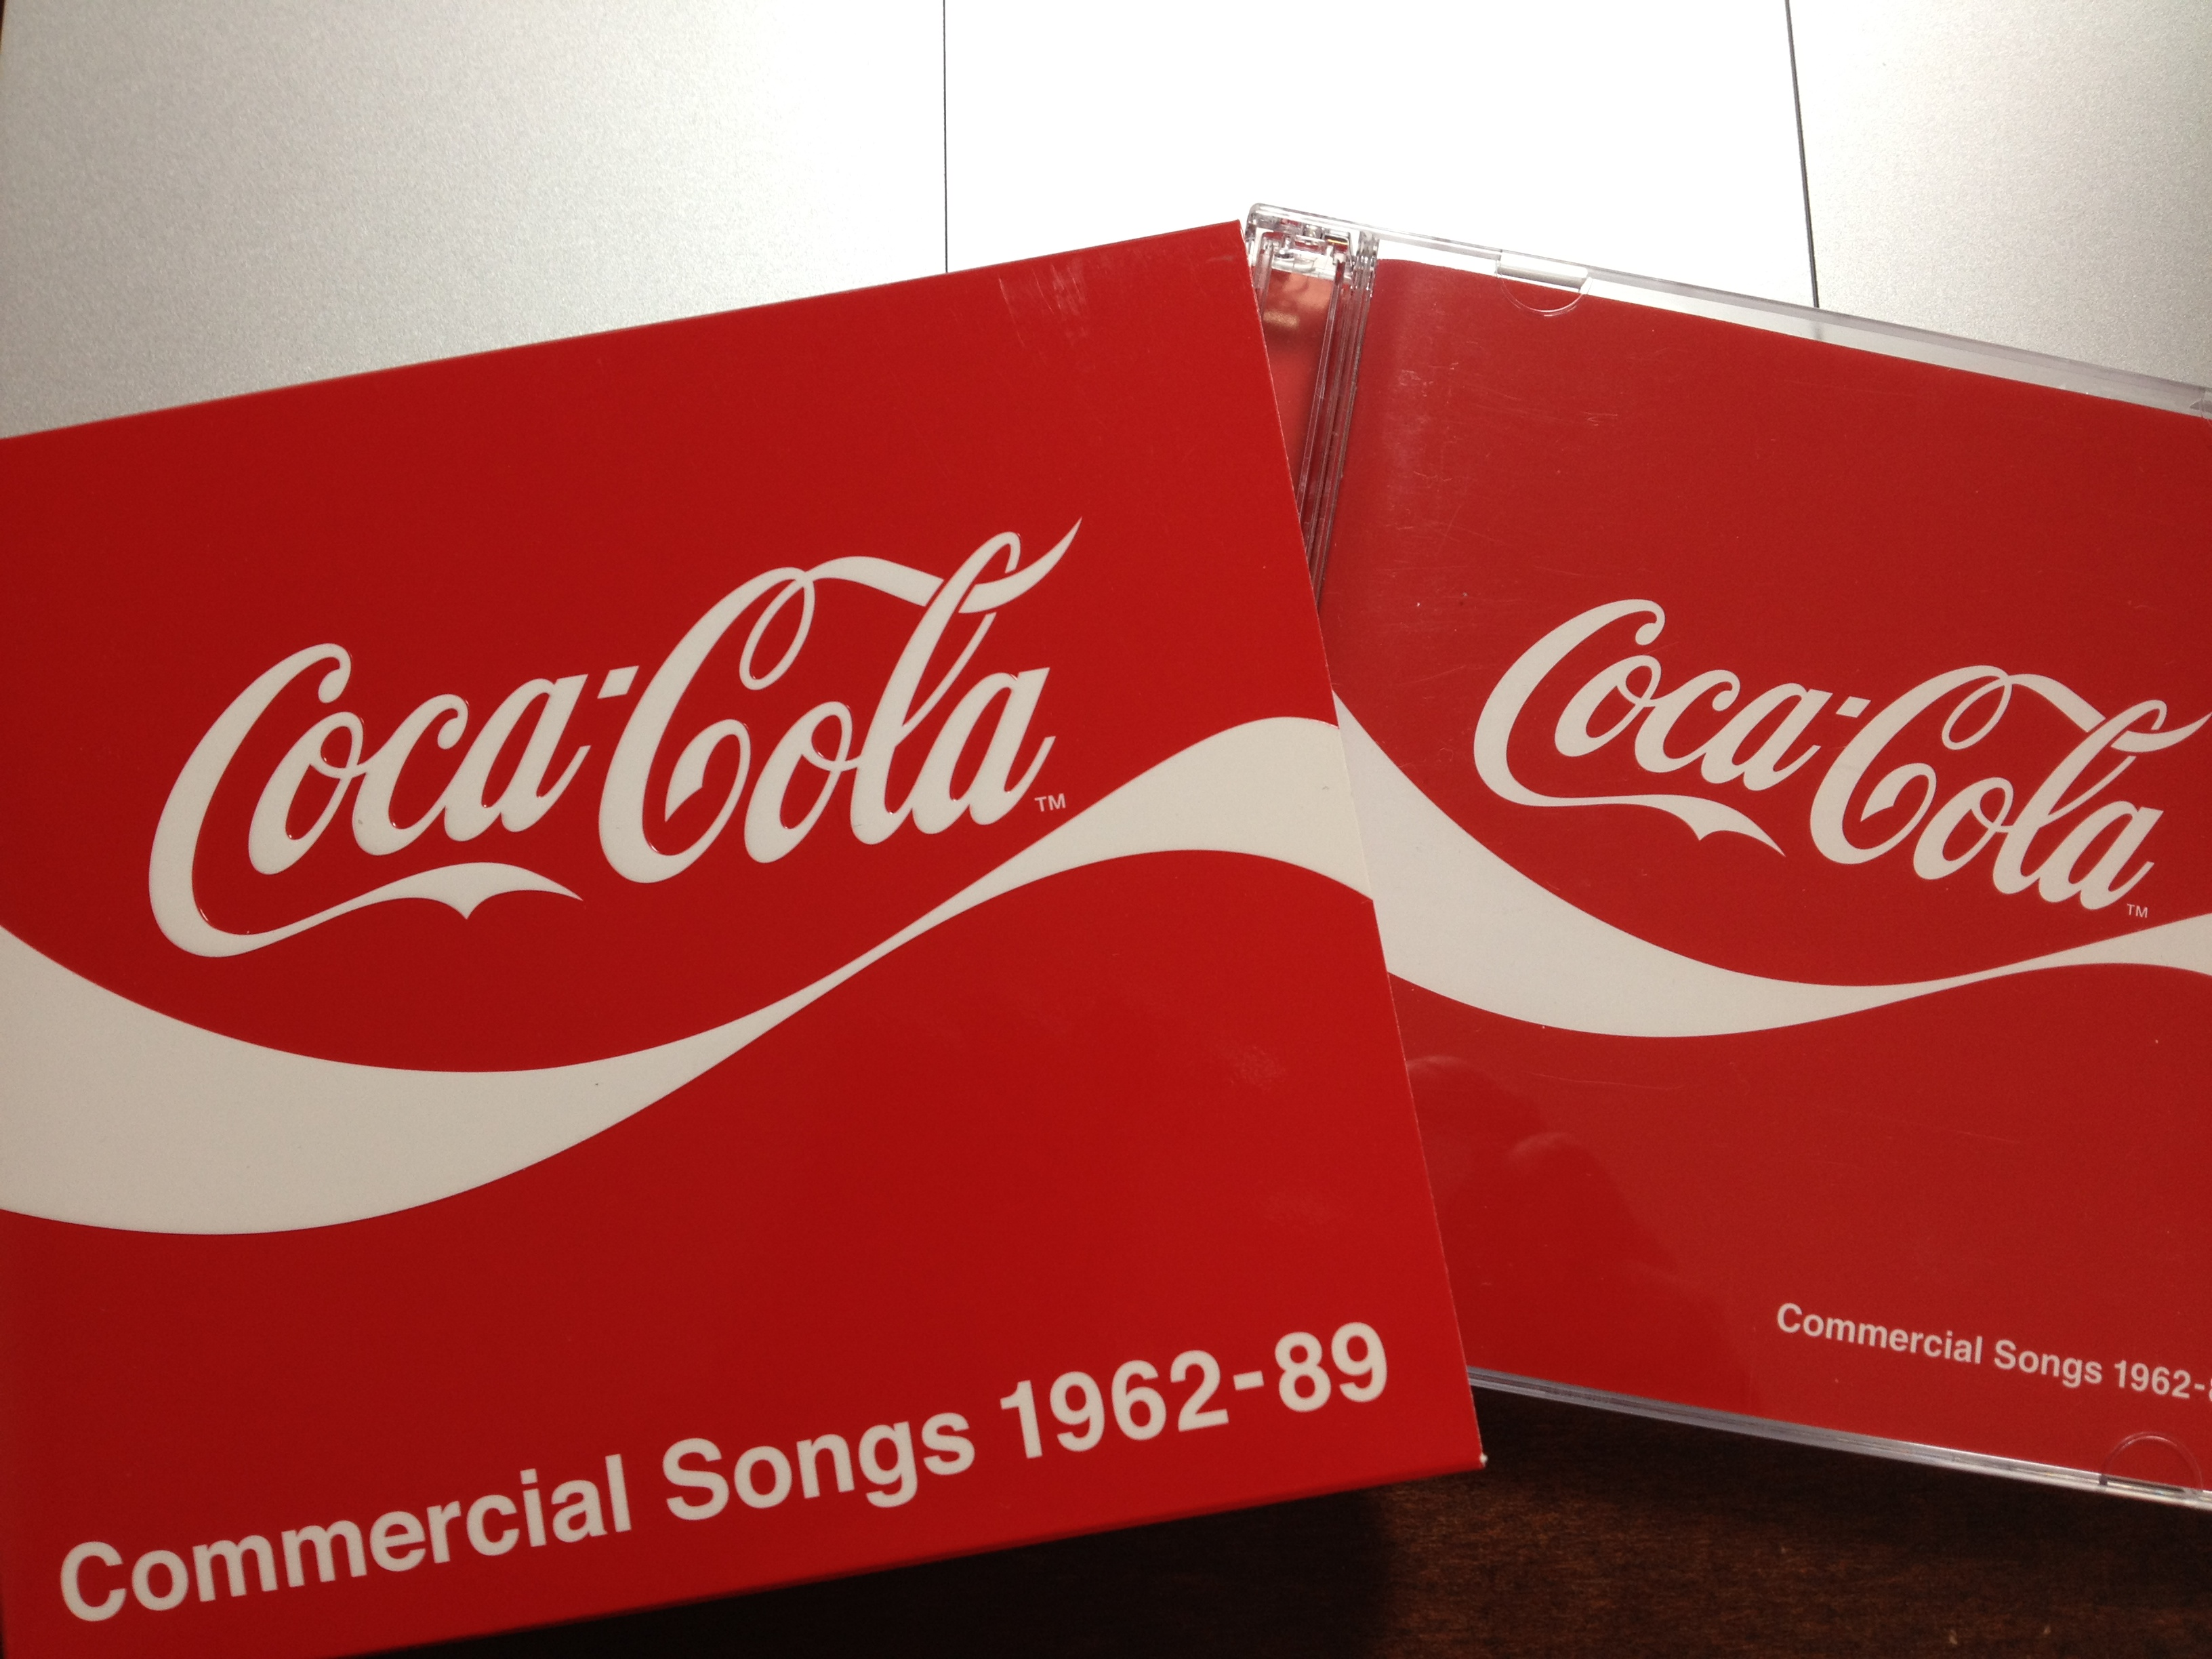 Coca Cola Commercial Songs 1962-89